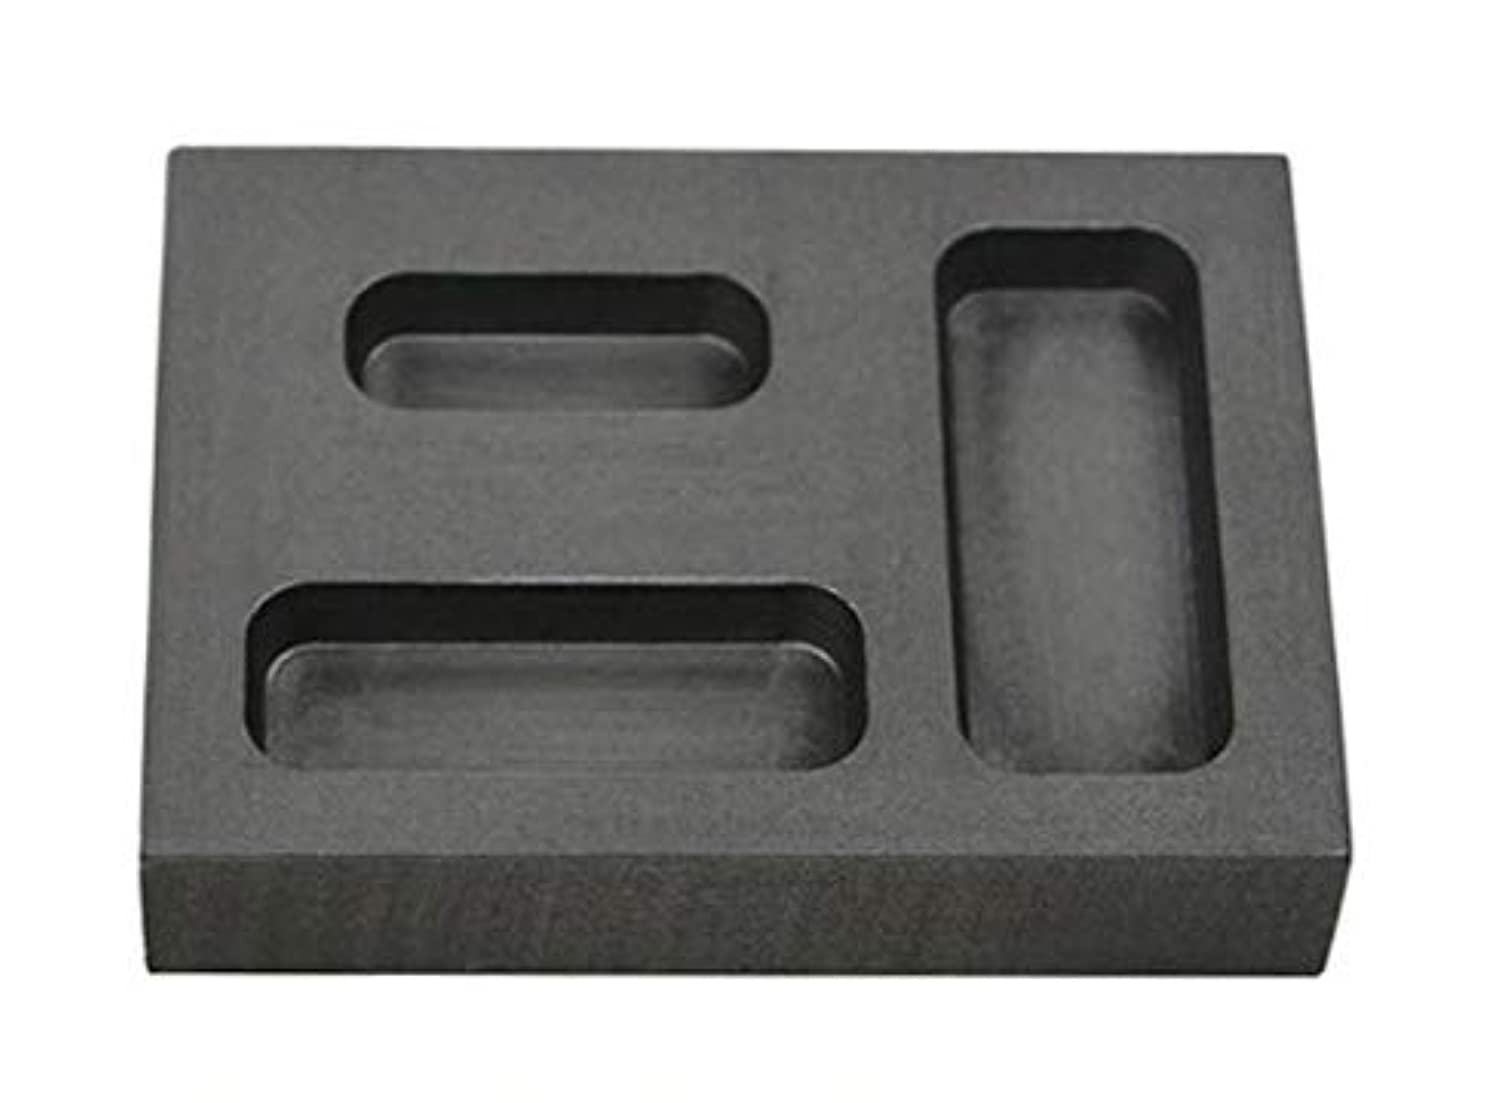 1/4 oz 1/2 oz 1 oz Ounce Combo Graphite Ingot Mold Crucible for Melting Gold Silver nonferrous Metal Casting Refining Scrap Jewelry